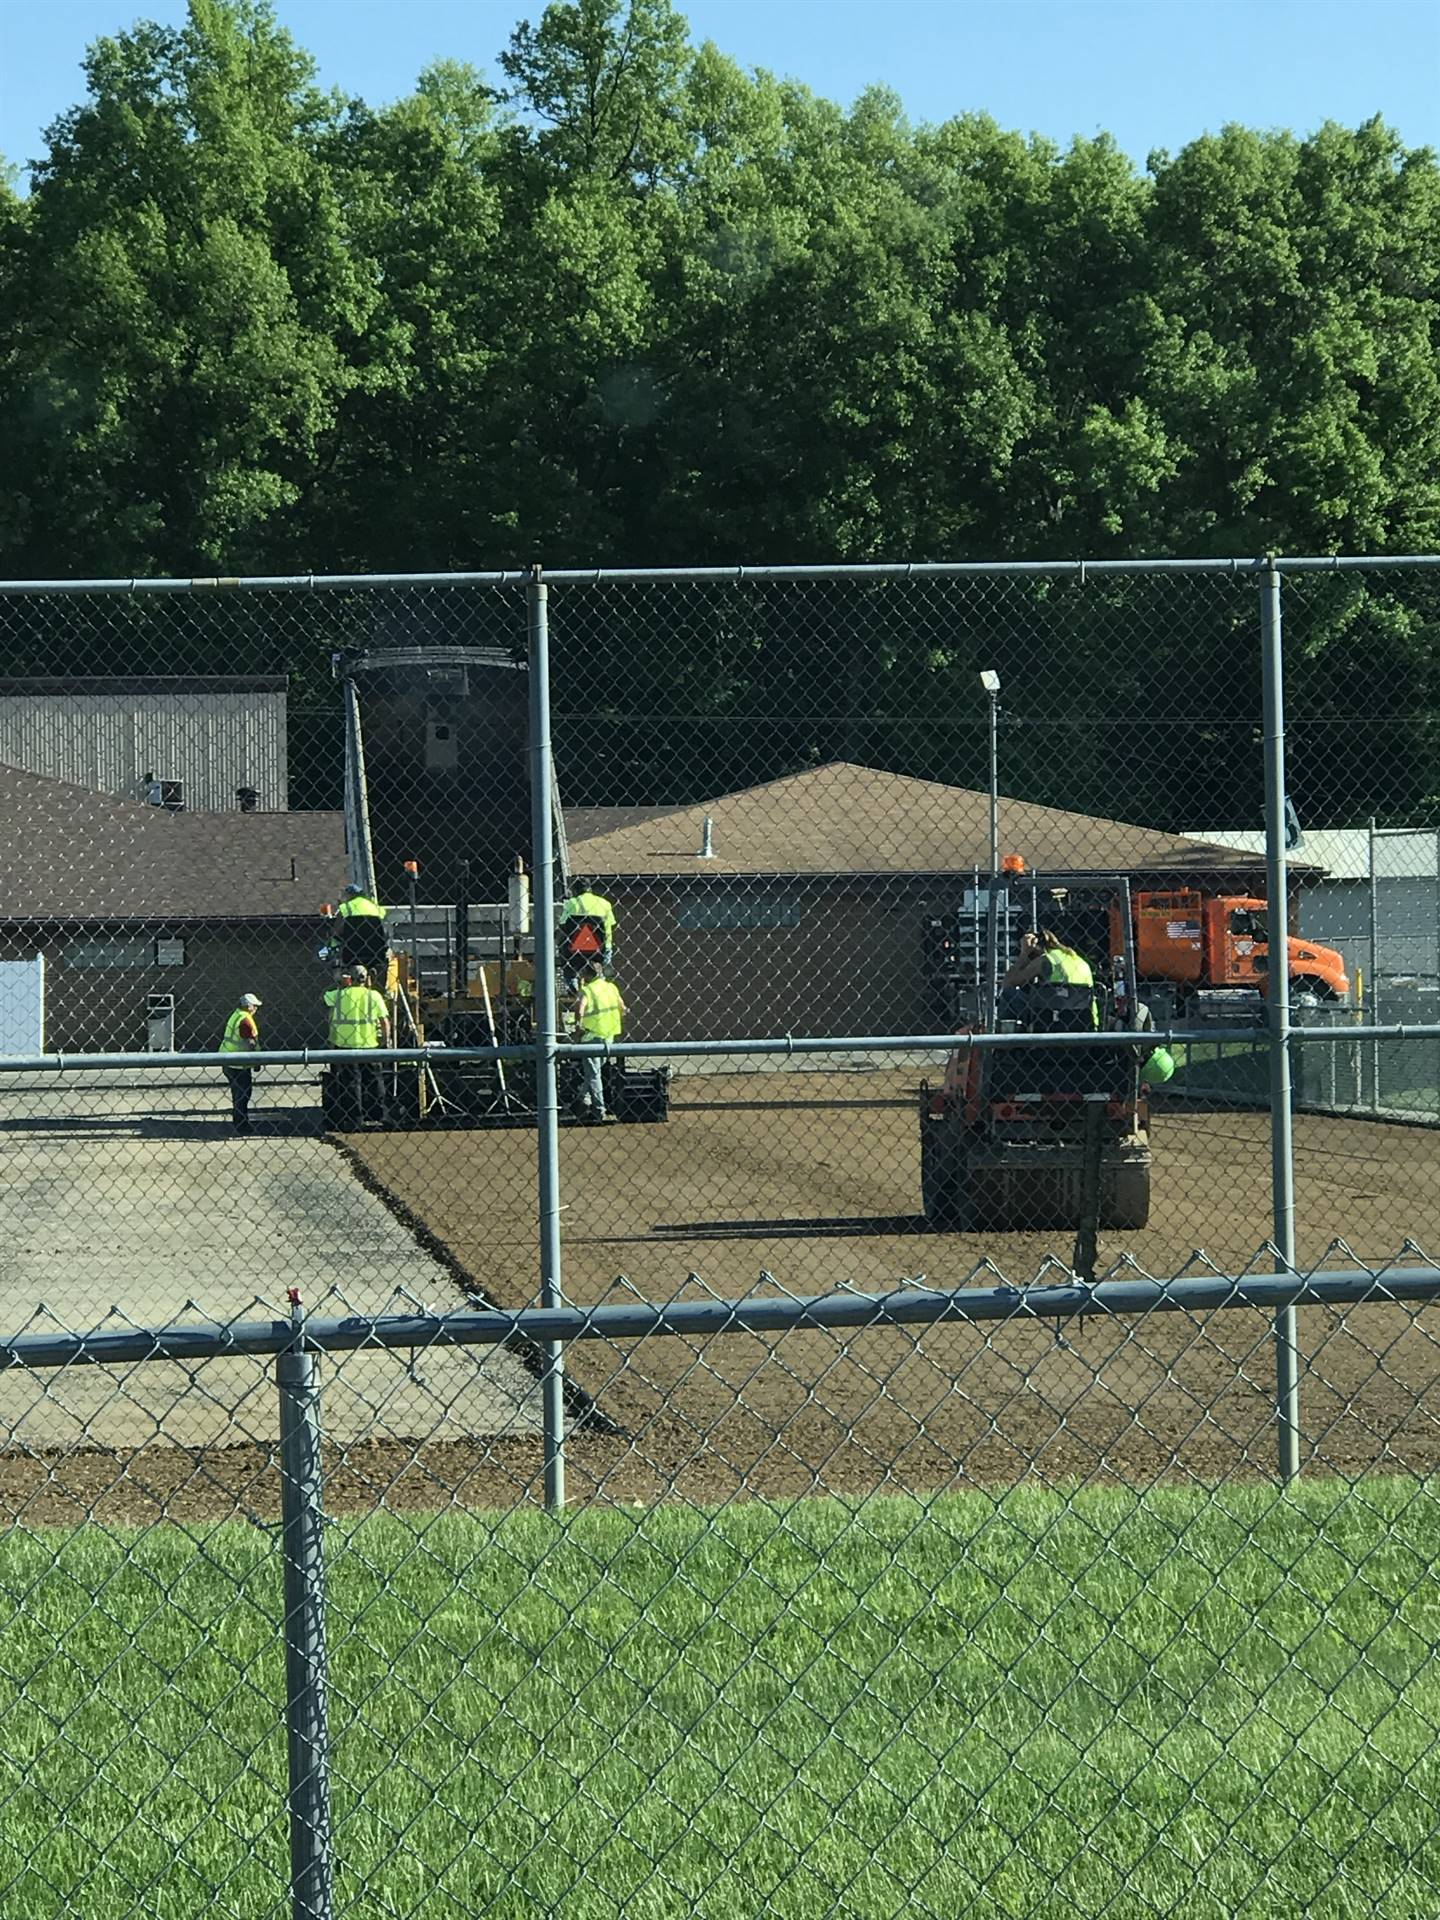 New sub base being laid